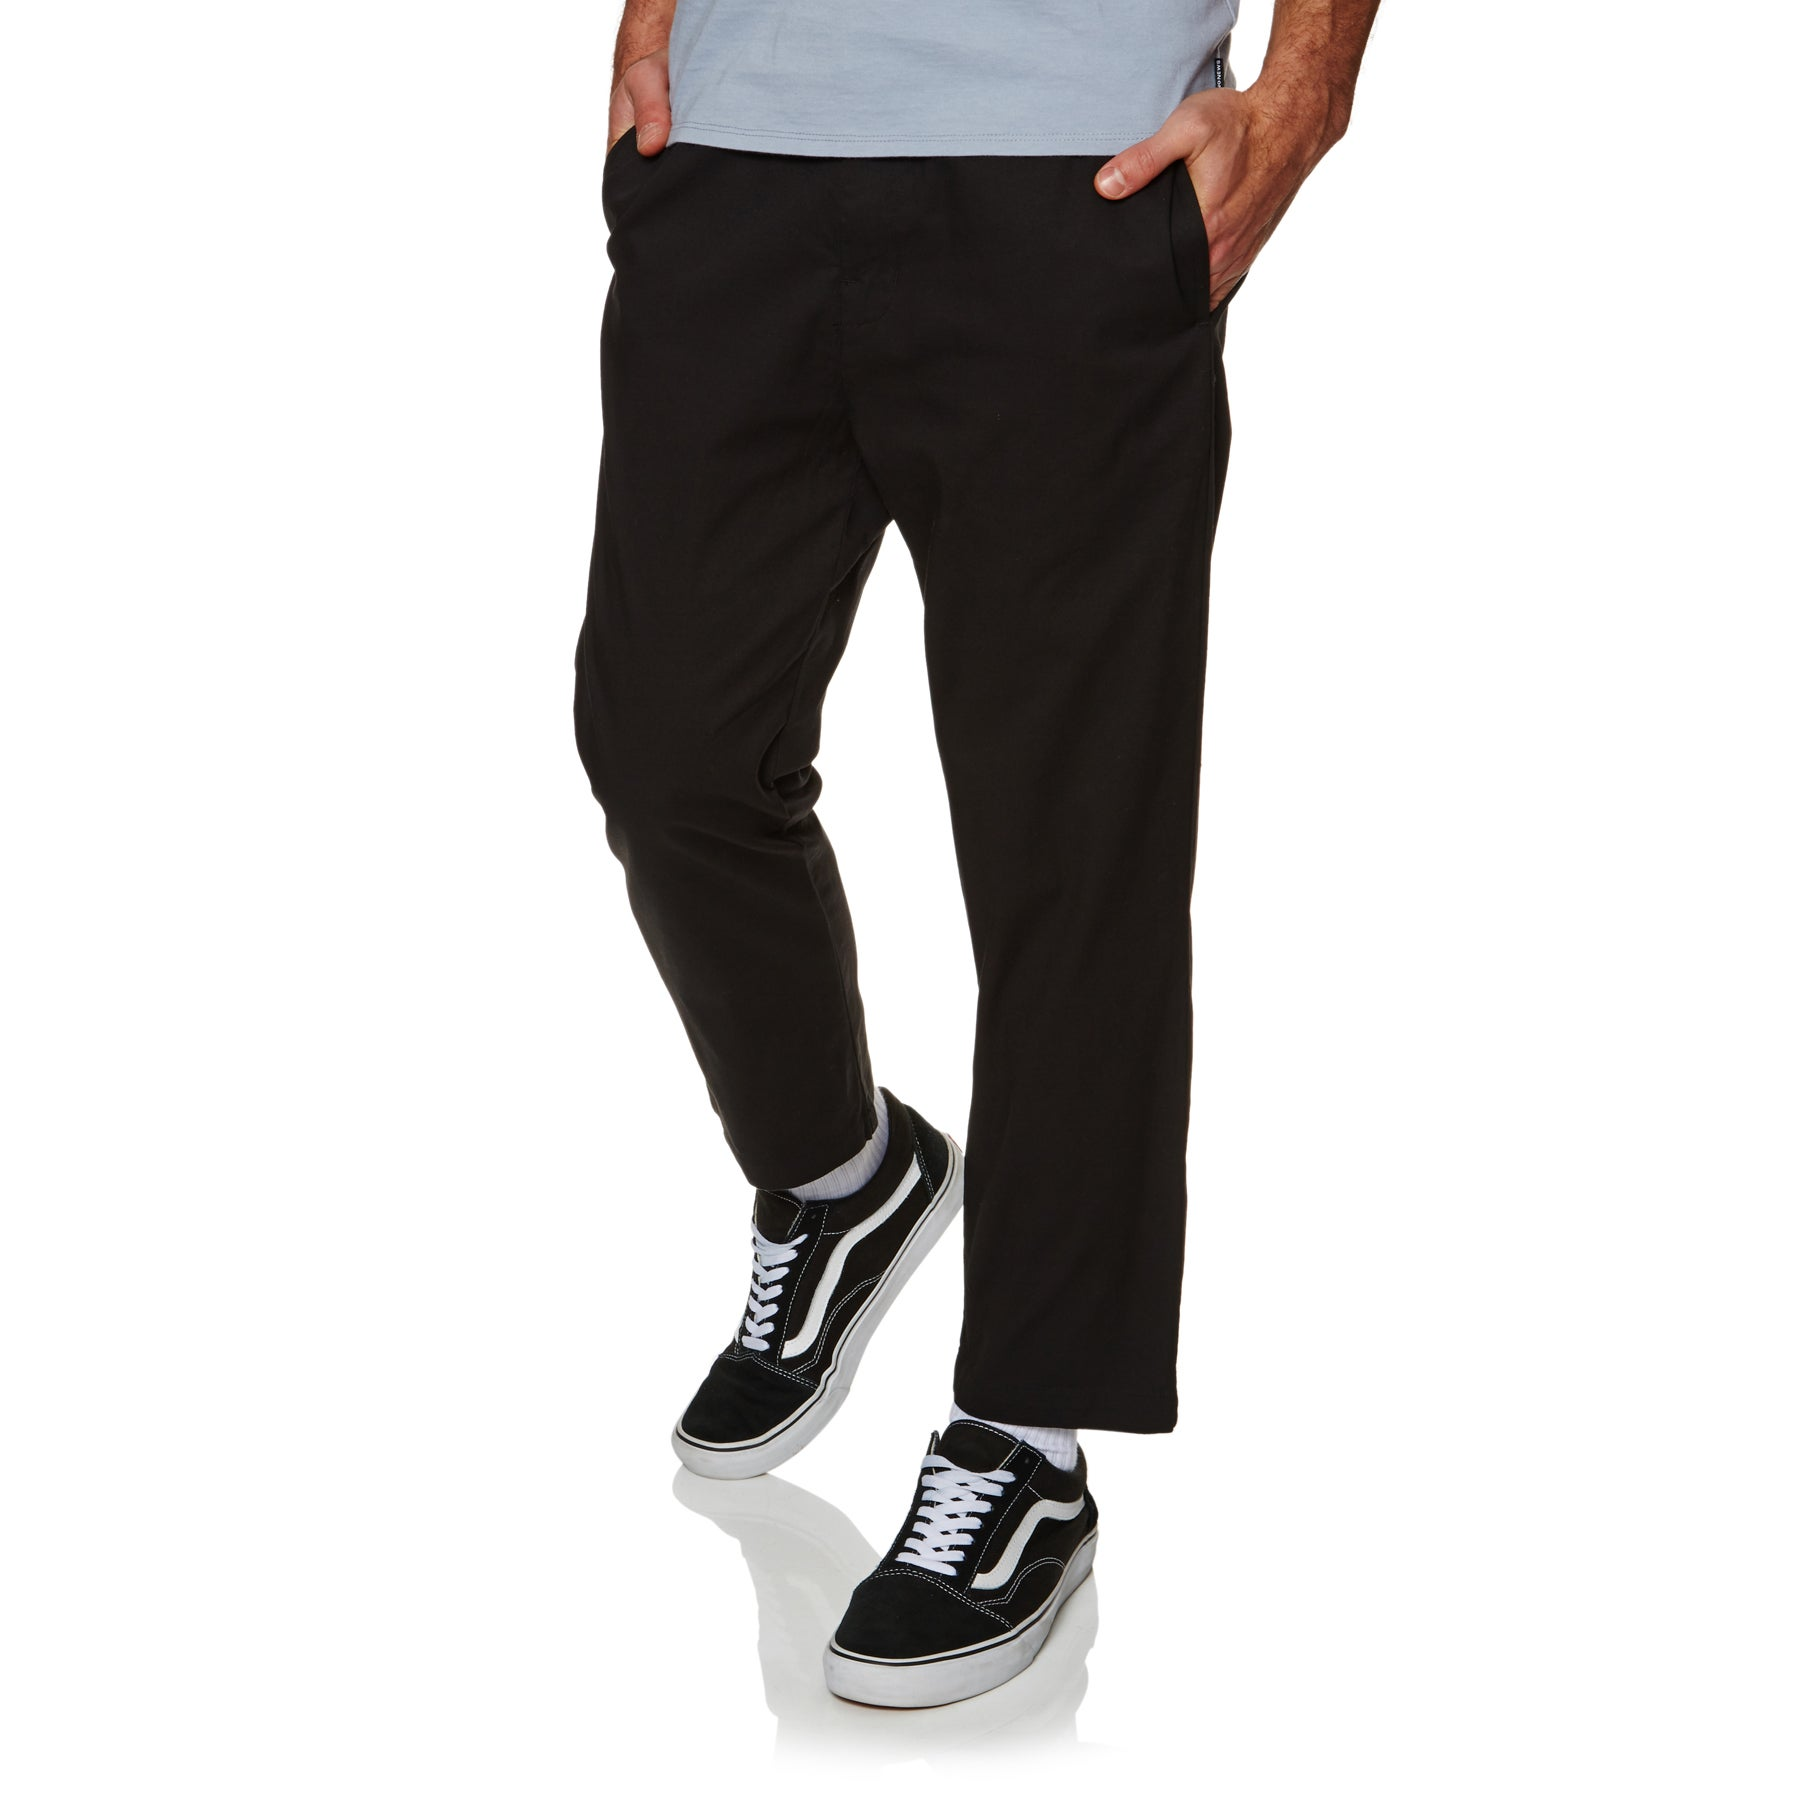 No News After Hours Chino Pant